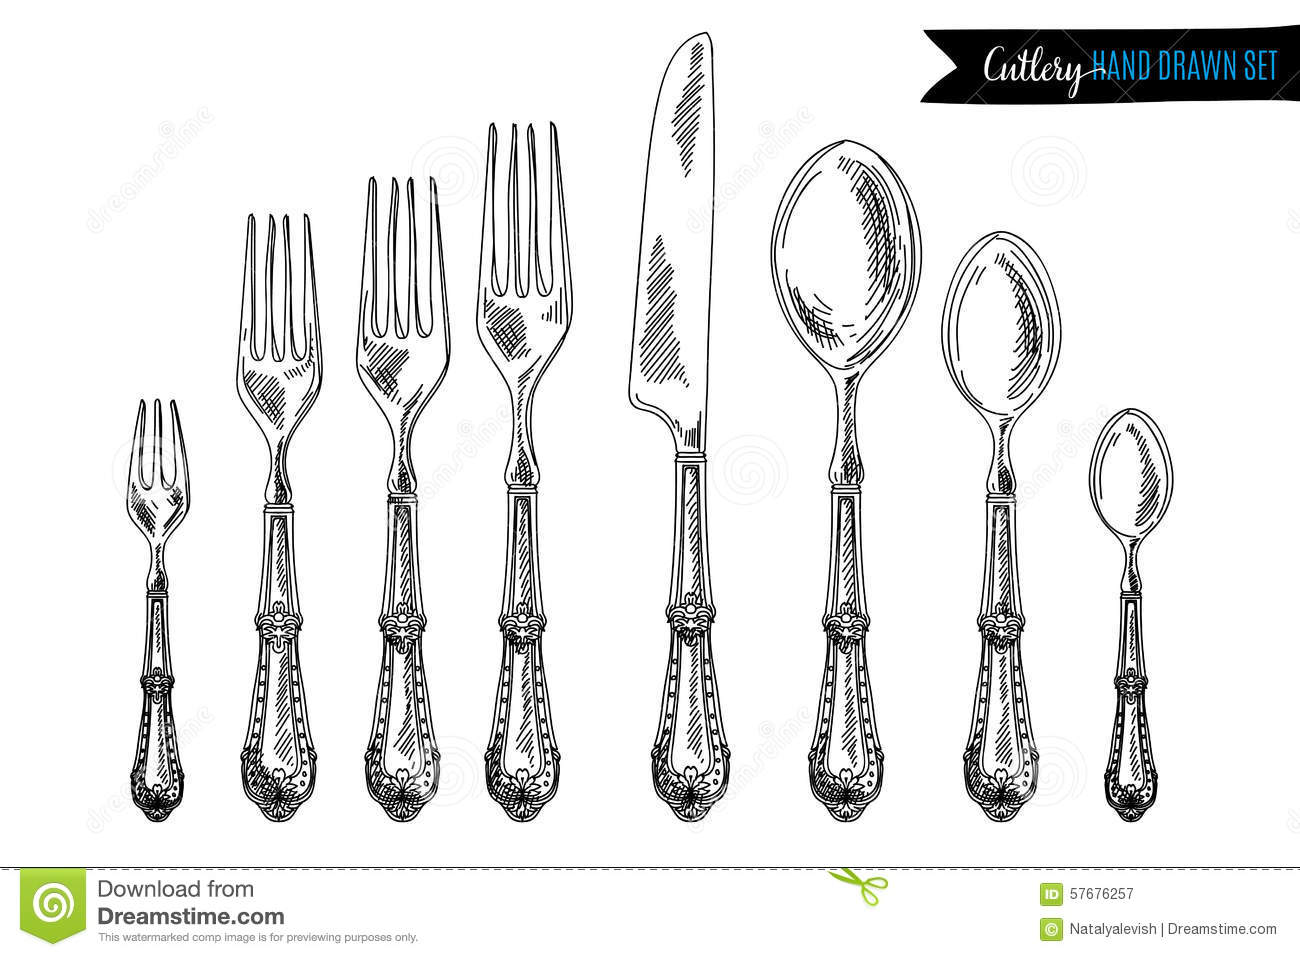 15 Kitchen Utensils Sketch : Vector Hand Drawn Illustration With Cutlery Set Stock Vector - Image ...